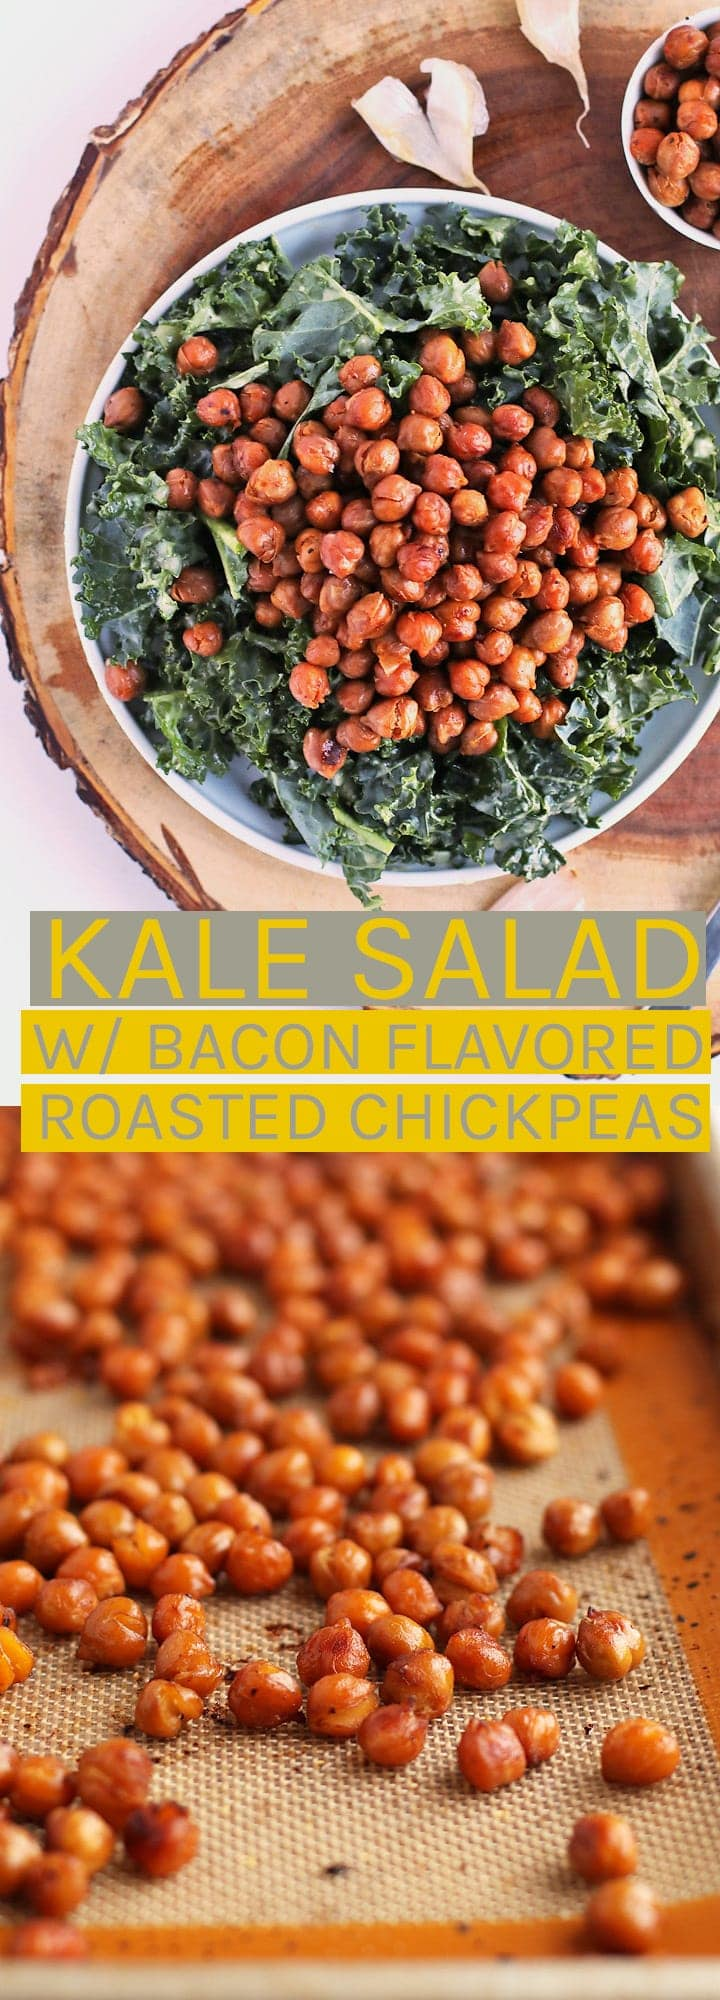 This Massaged Kale Salad with Bacon Flavored Roasted Chickpeas and Garlic Dijon Vinaigrette; a hearty and wholesome vegan gluten-free salad.